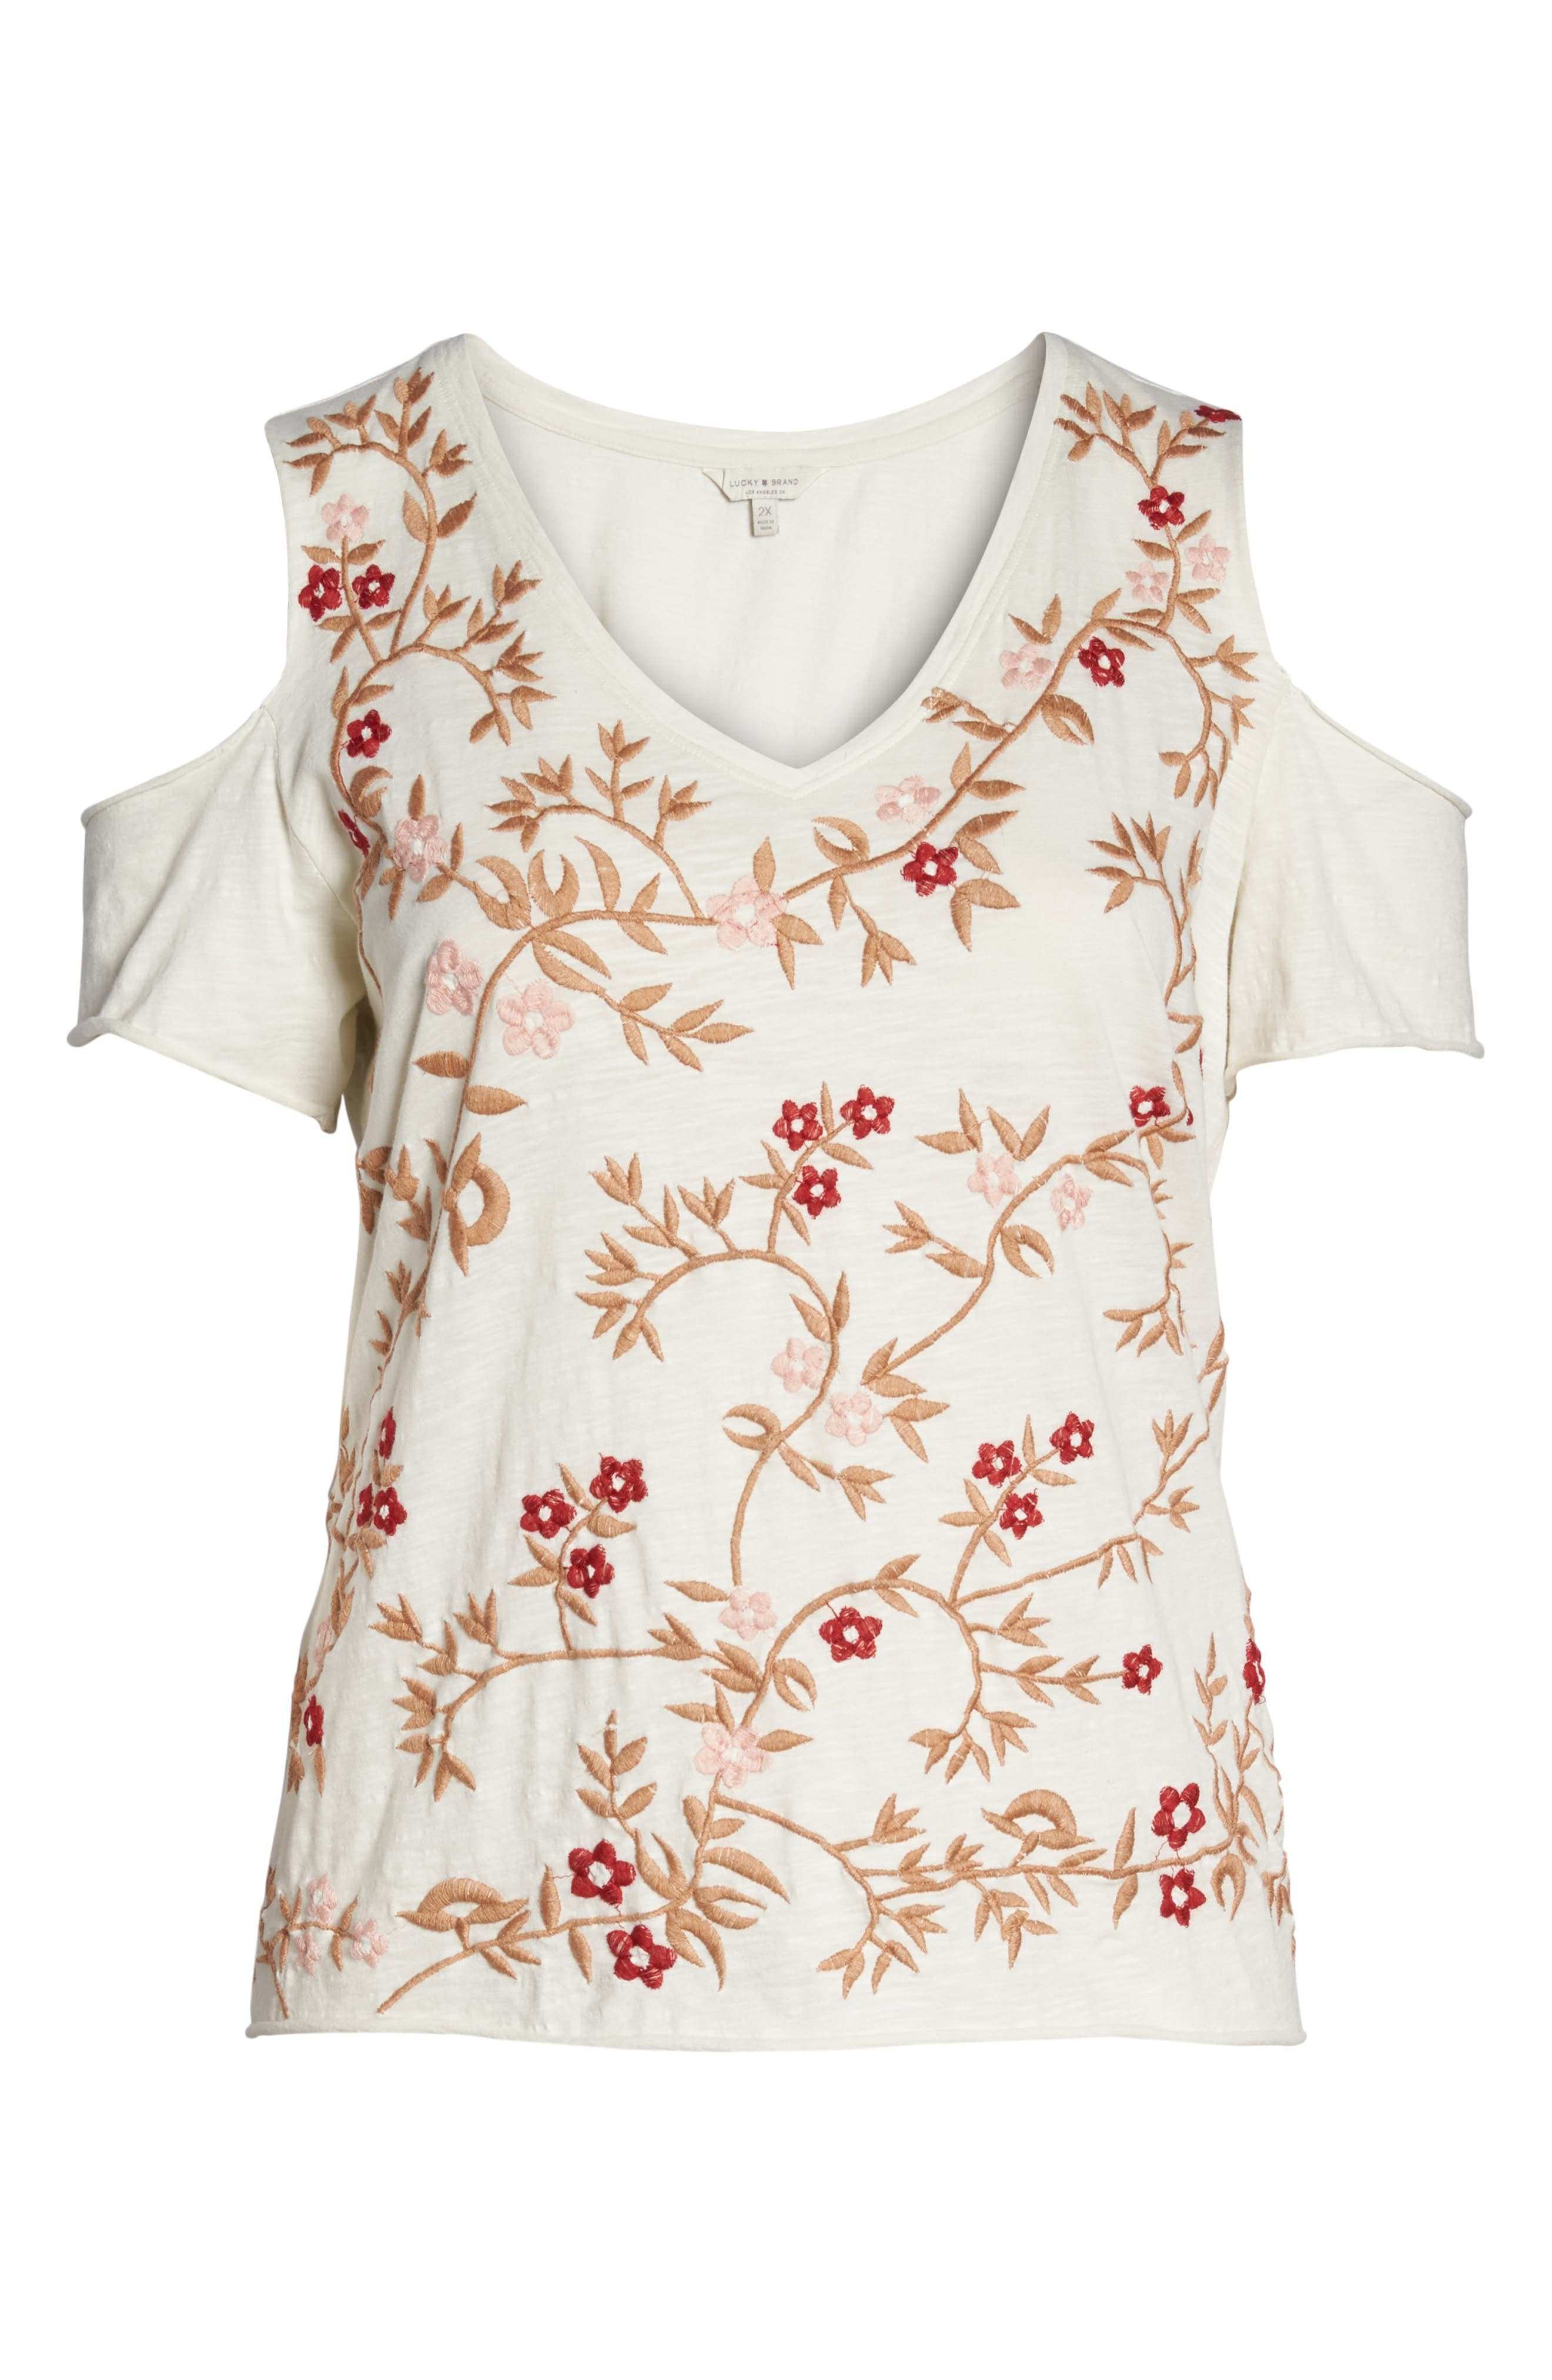 Floral Embroidered Tee,                             Alternate thumbnail 7, color,                             600